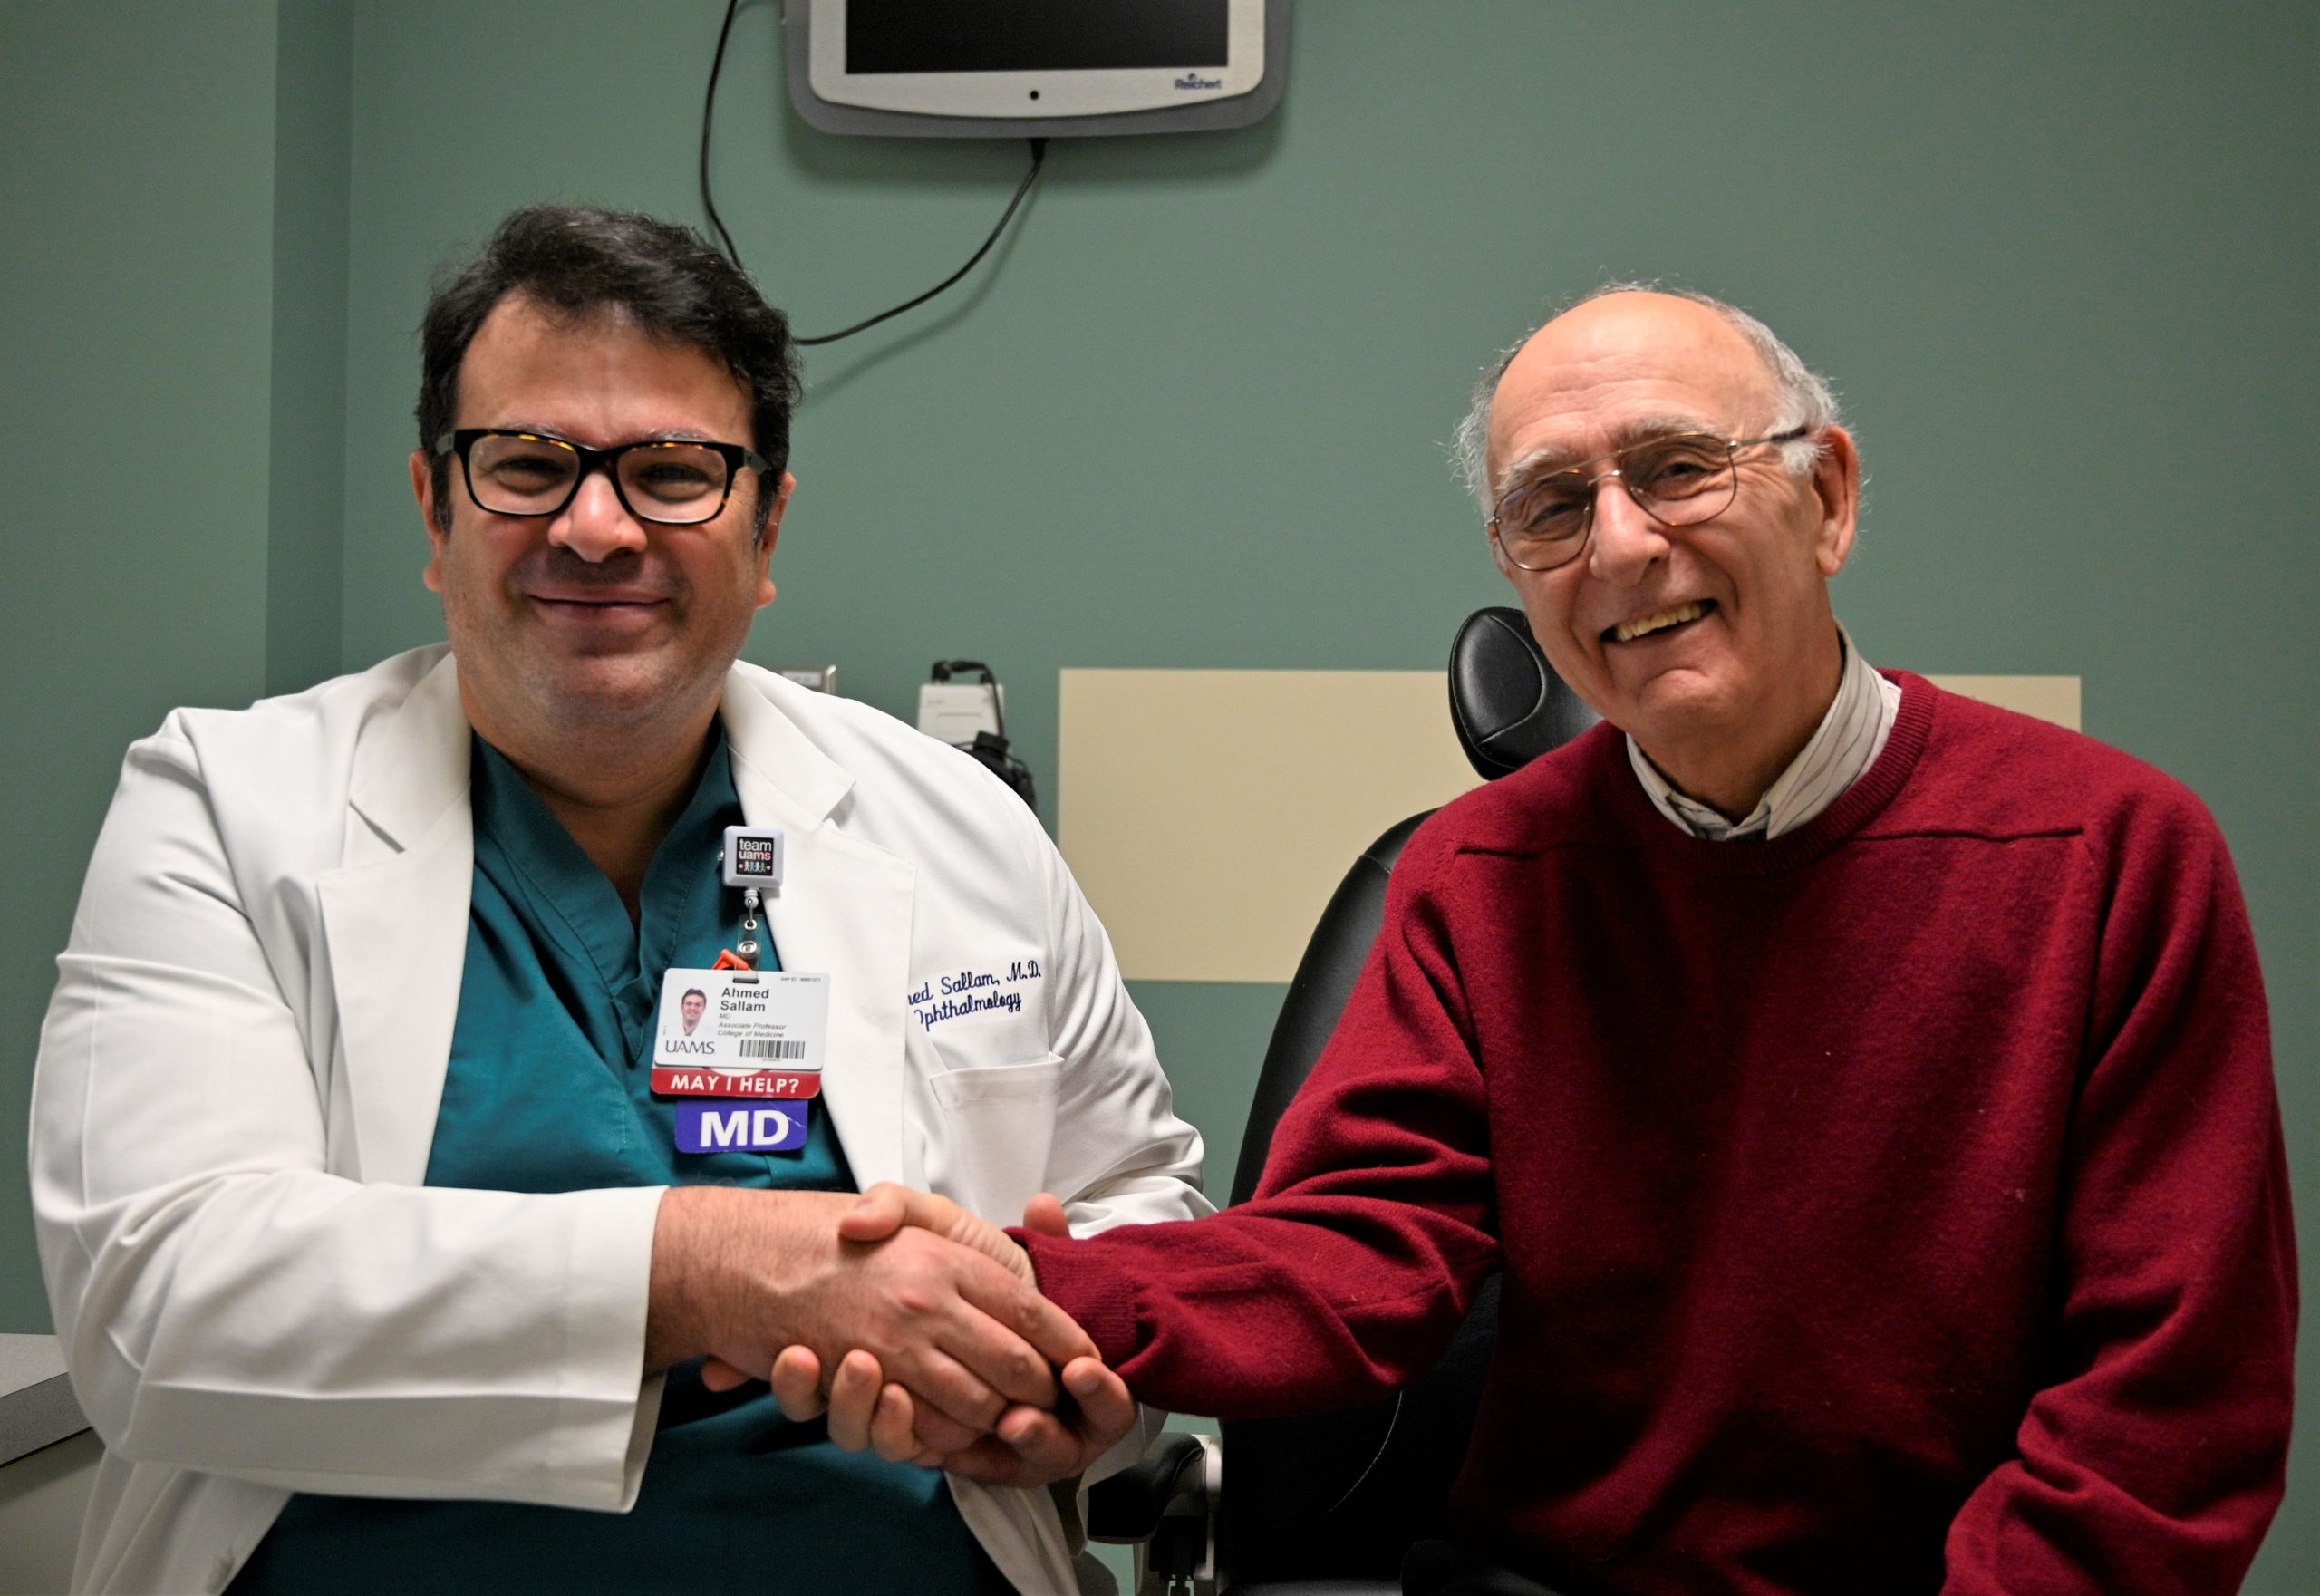 Ahmed Sallam, M.D., Ph.D., and patient Jim Winter.